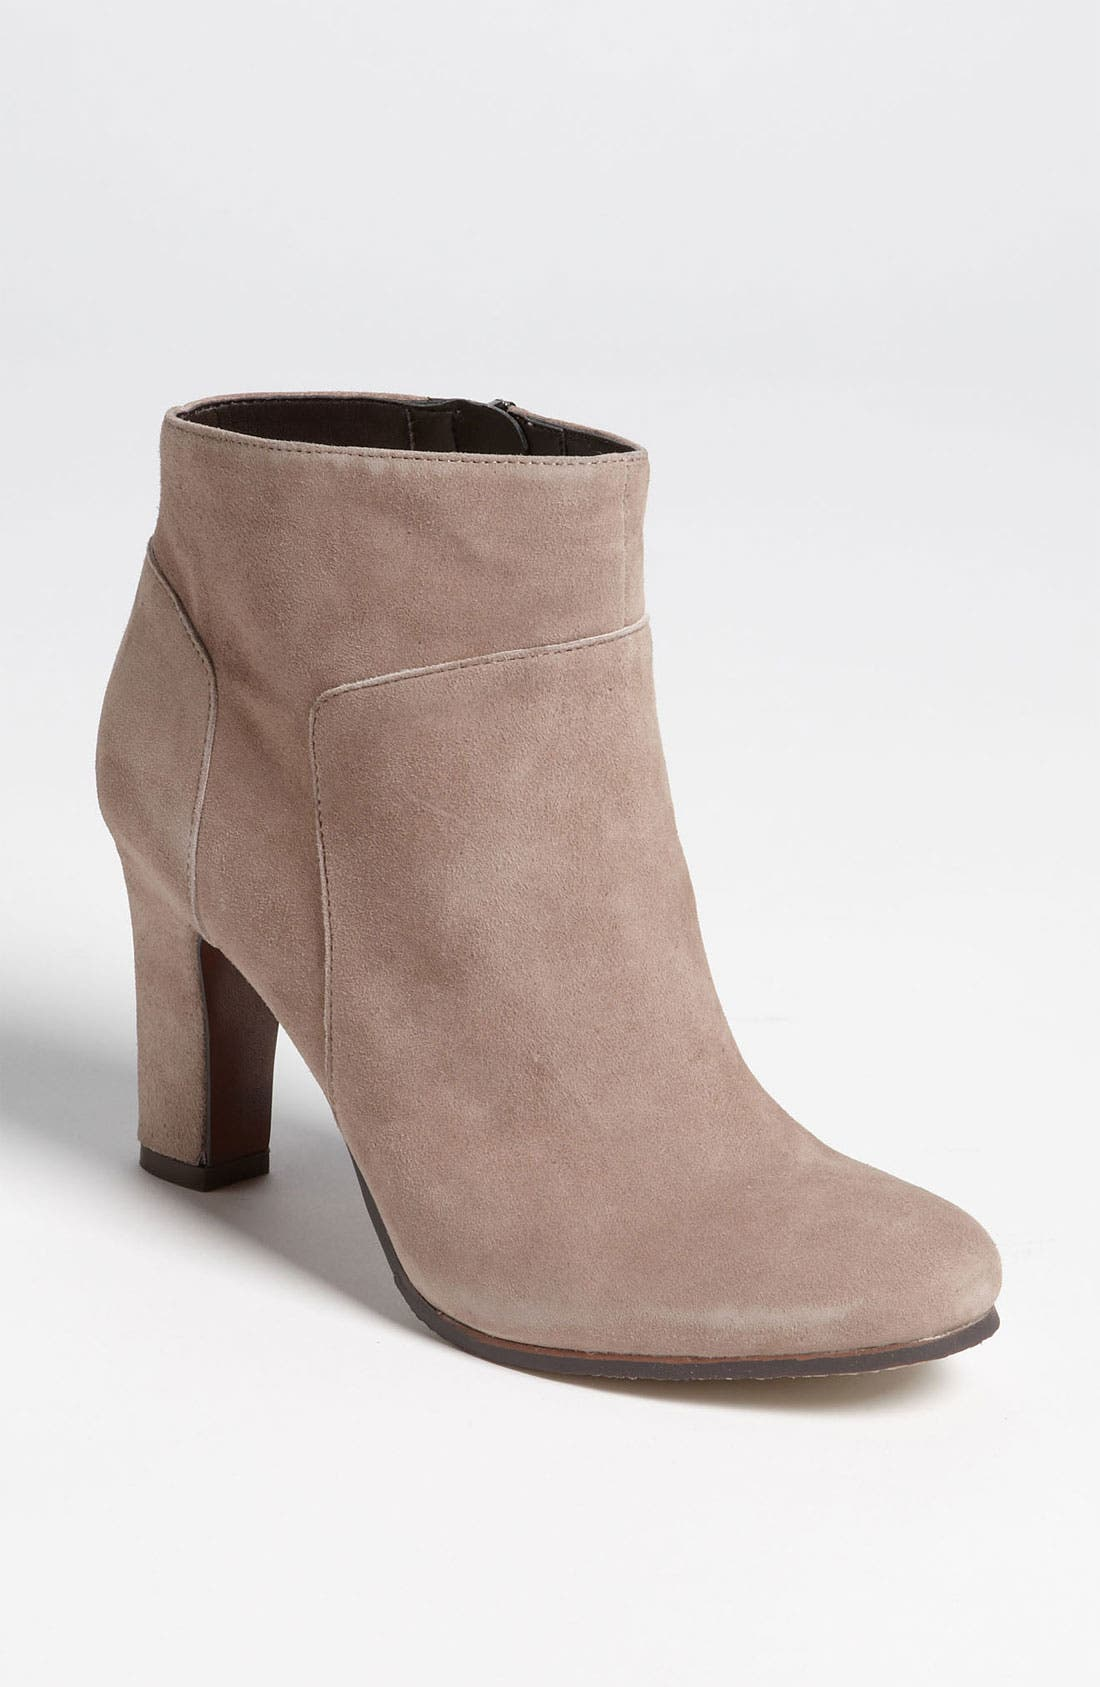 Alternate Image 1 Selected - Sam Edelman 'Salina' Boot